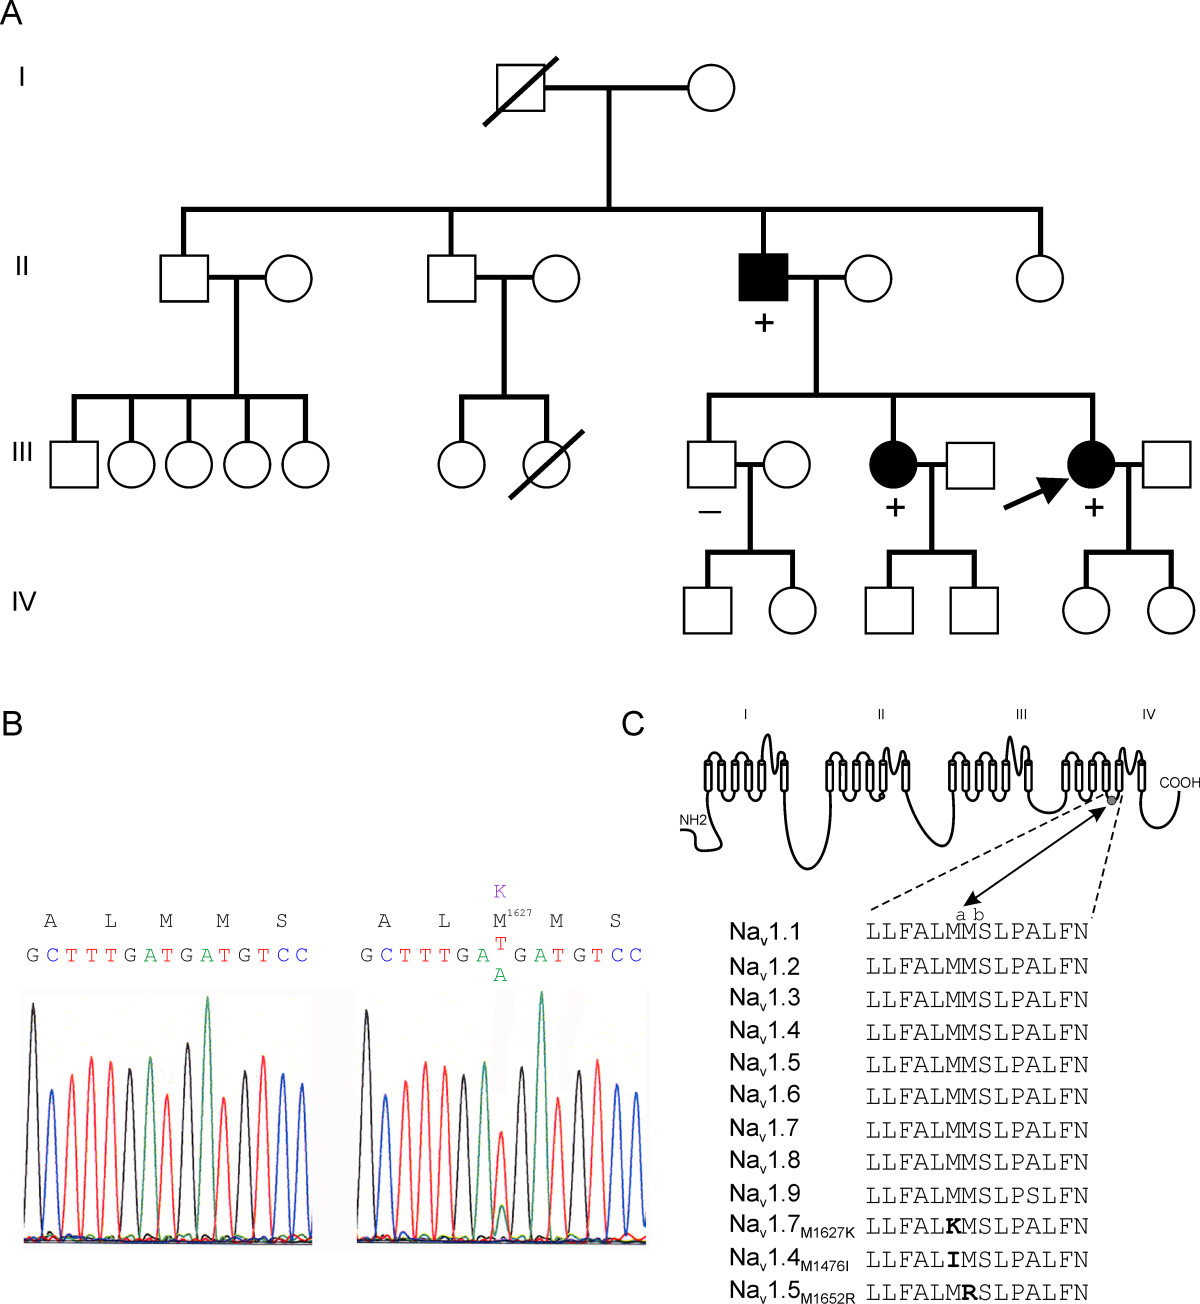 http://static-content.springer.com/image/art%3A10.1186%2F1744-8069-4-37/MediaObjects/12990_2008_Article_153_Fig1_HTML.jpg